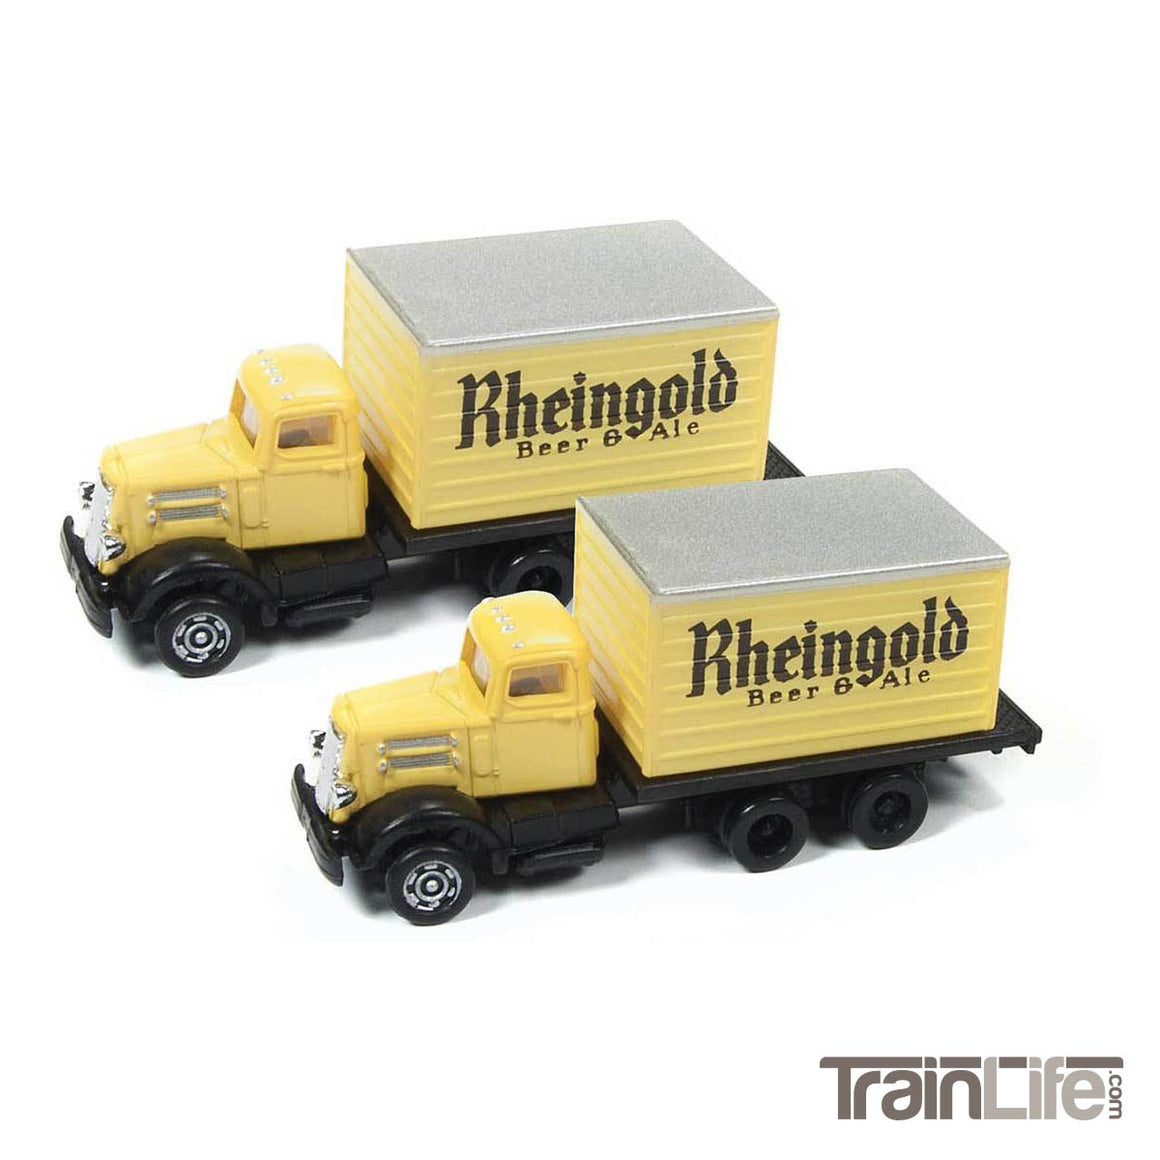 N Scale: WC22 Delivery Box Truck - Rhiengold Beer - 2 Pack